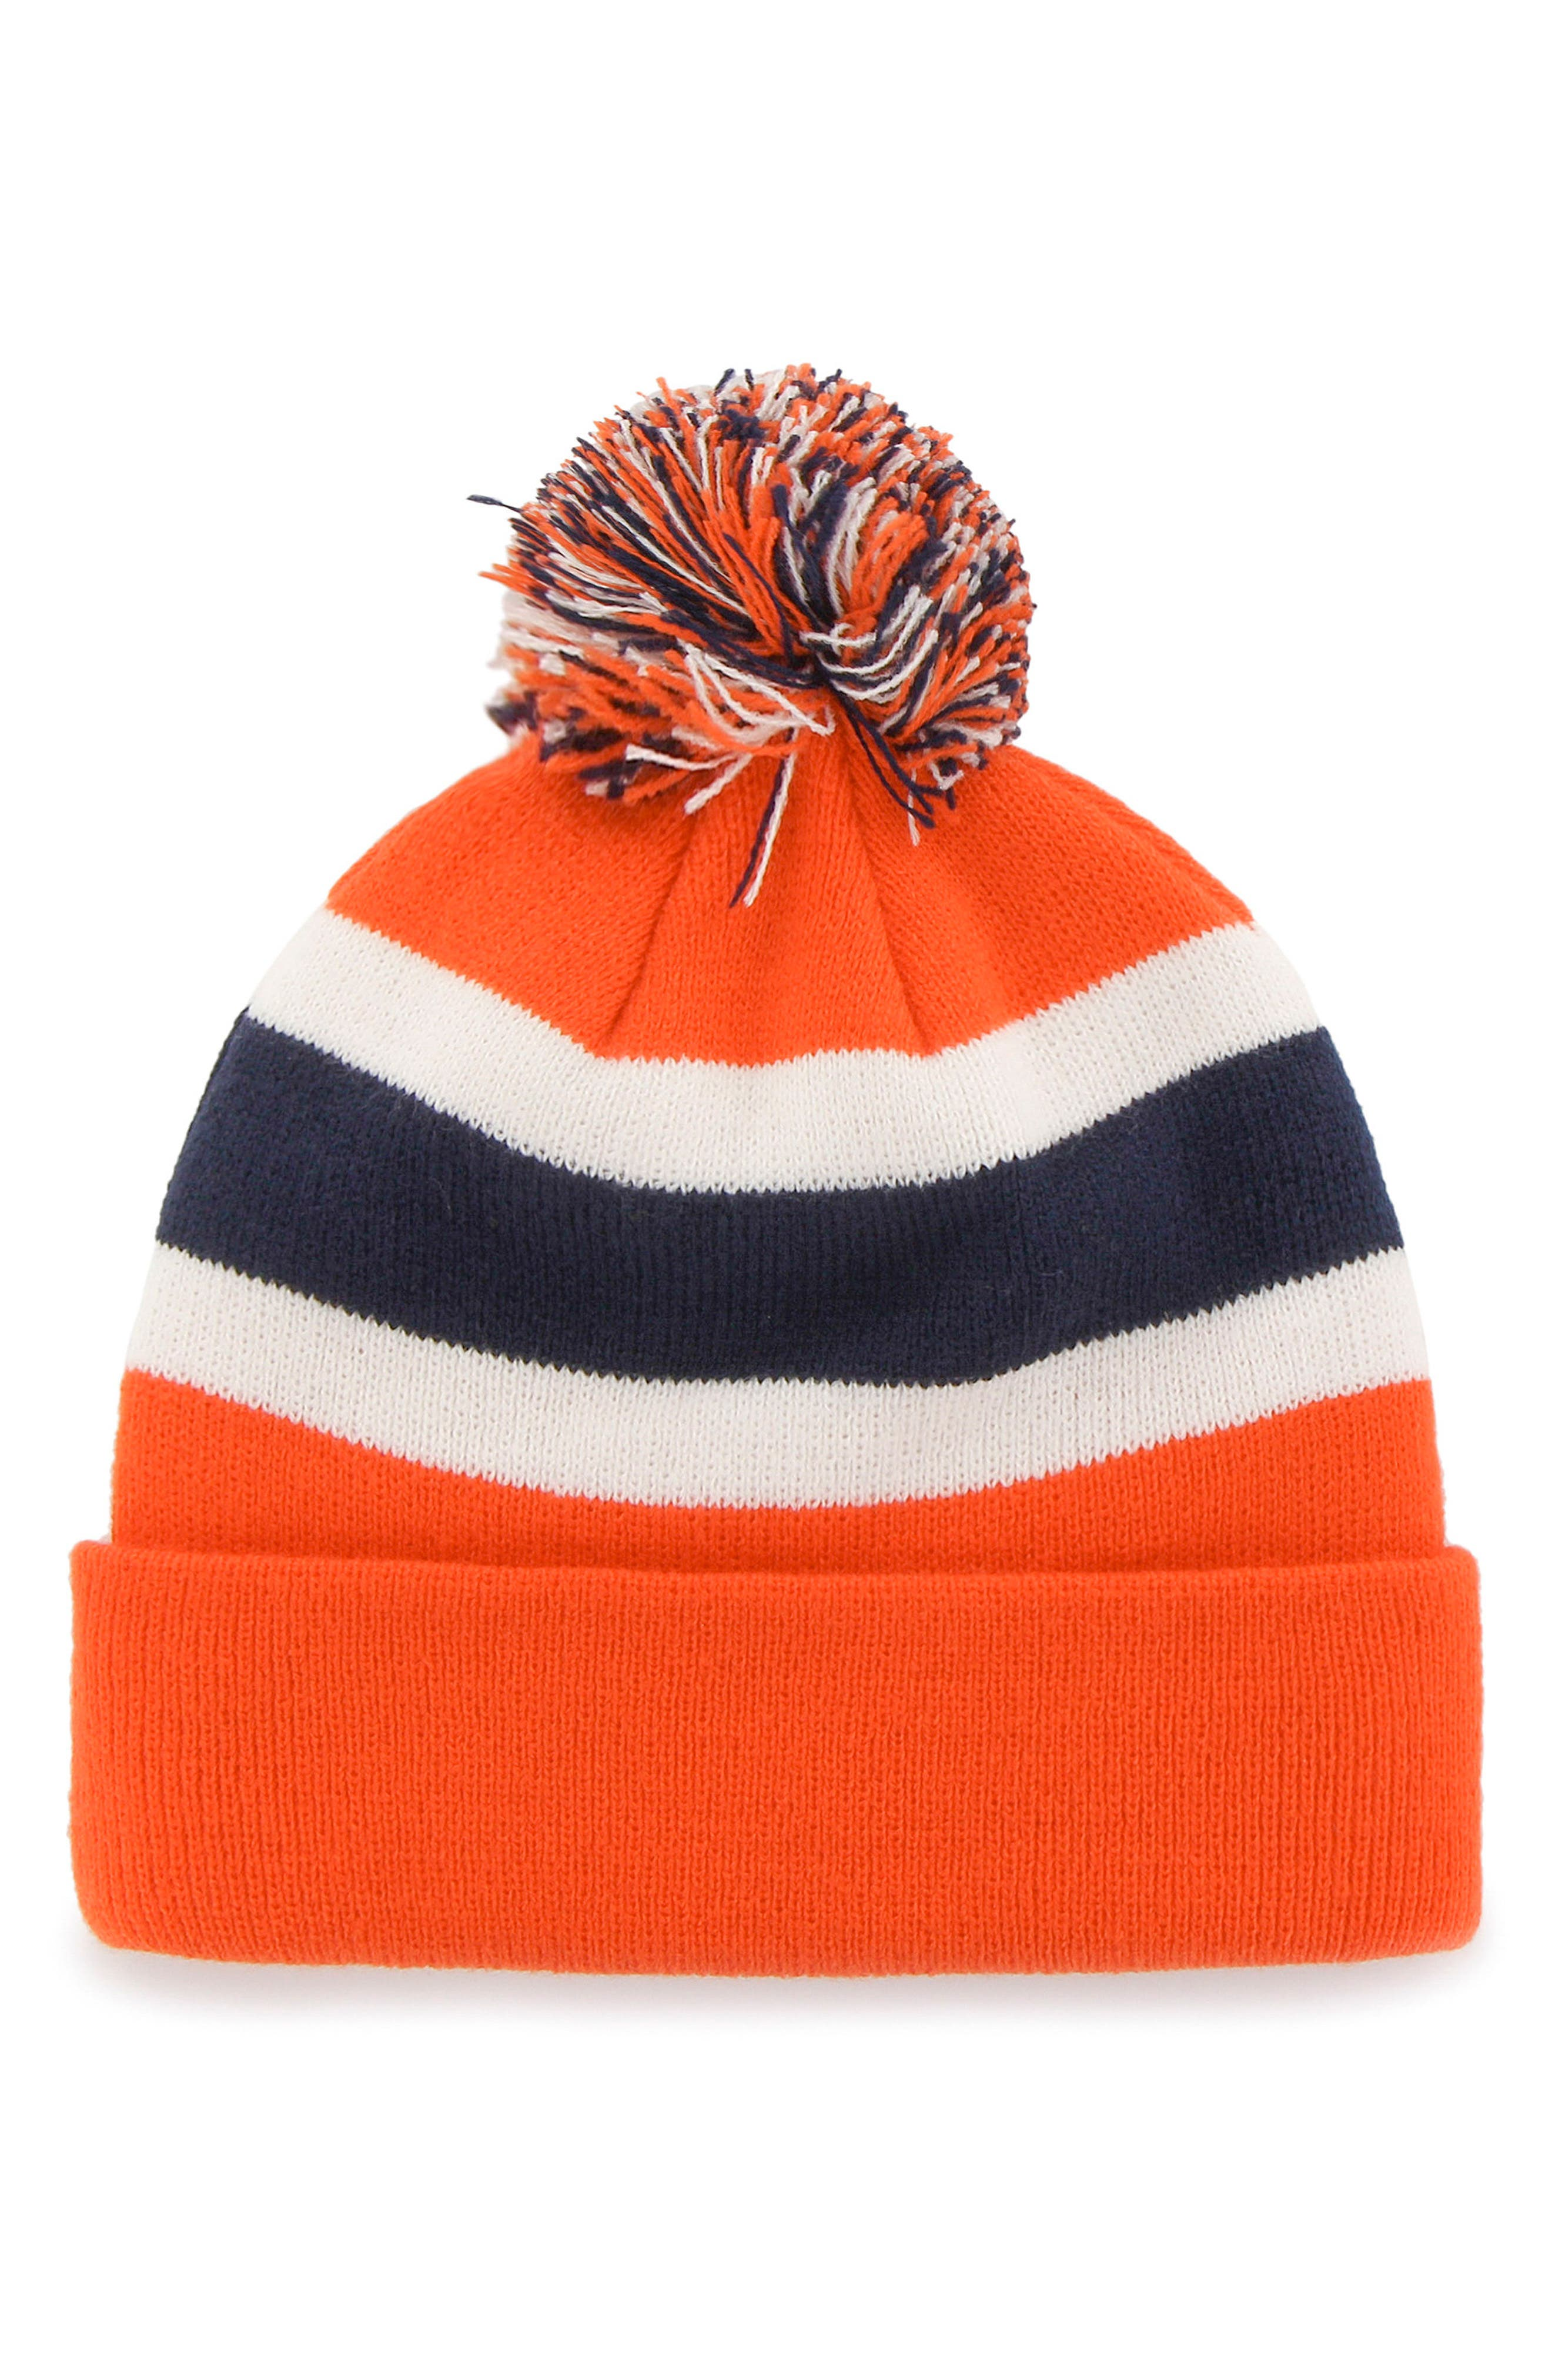 NFL Breakaway Knit Cap,                             Alternate thumbnail 12, color,